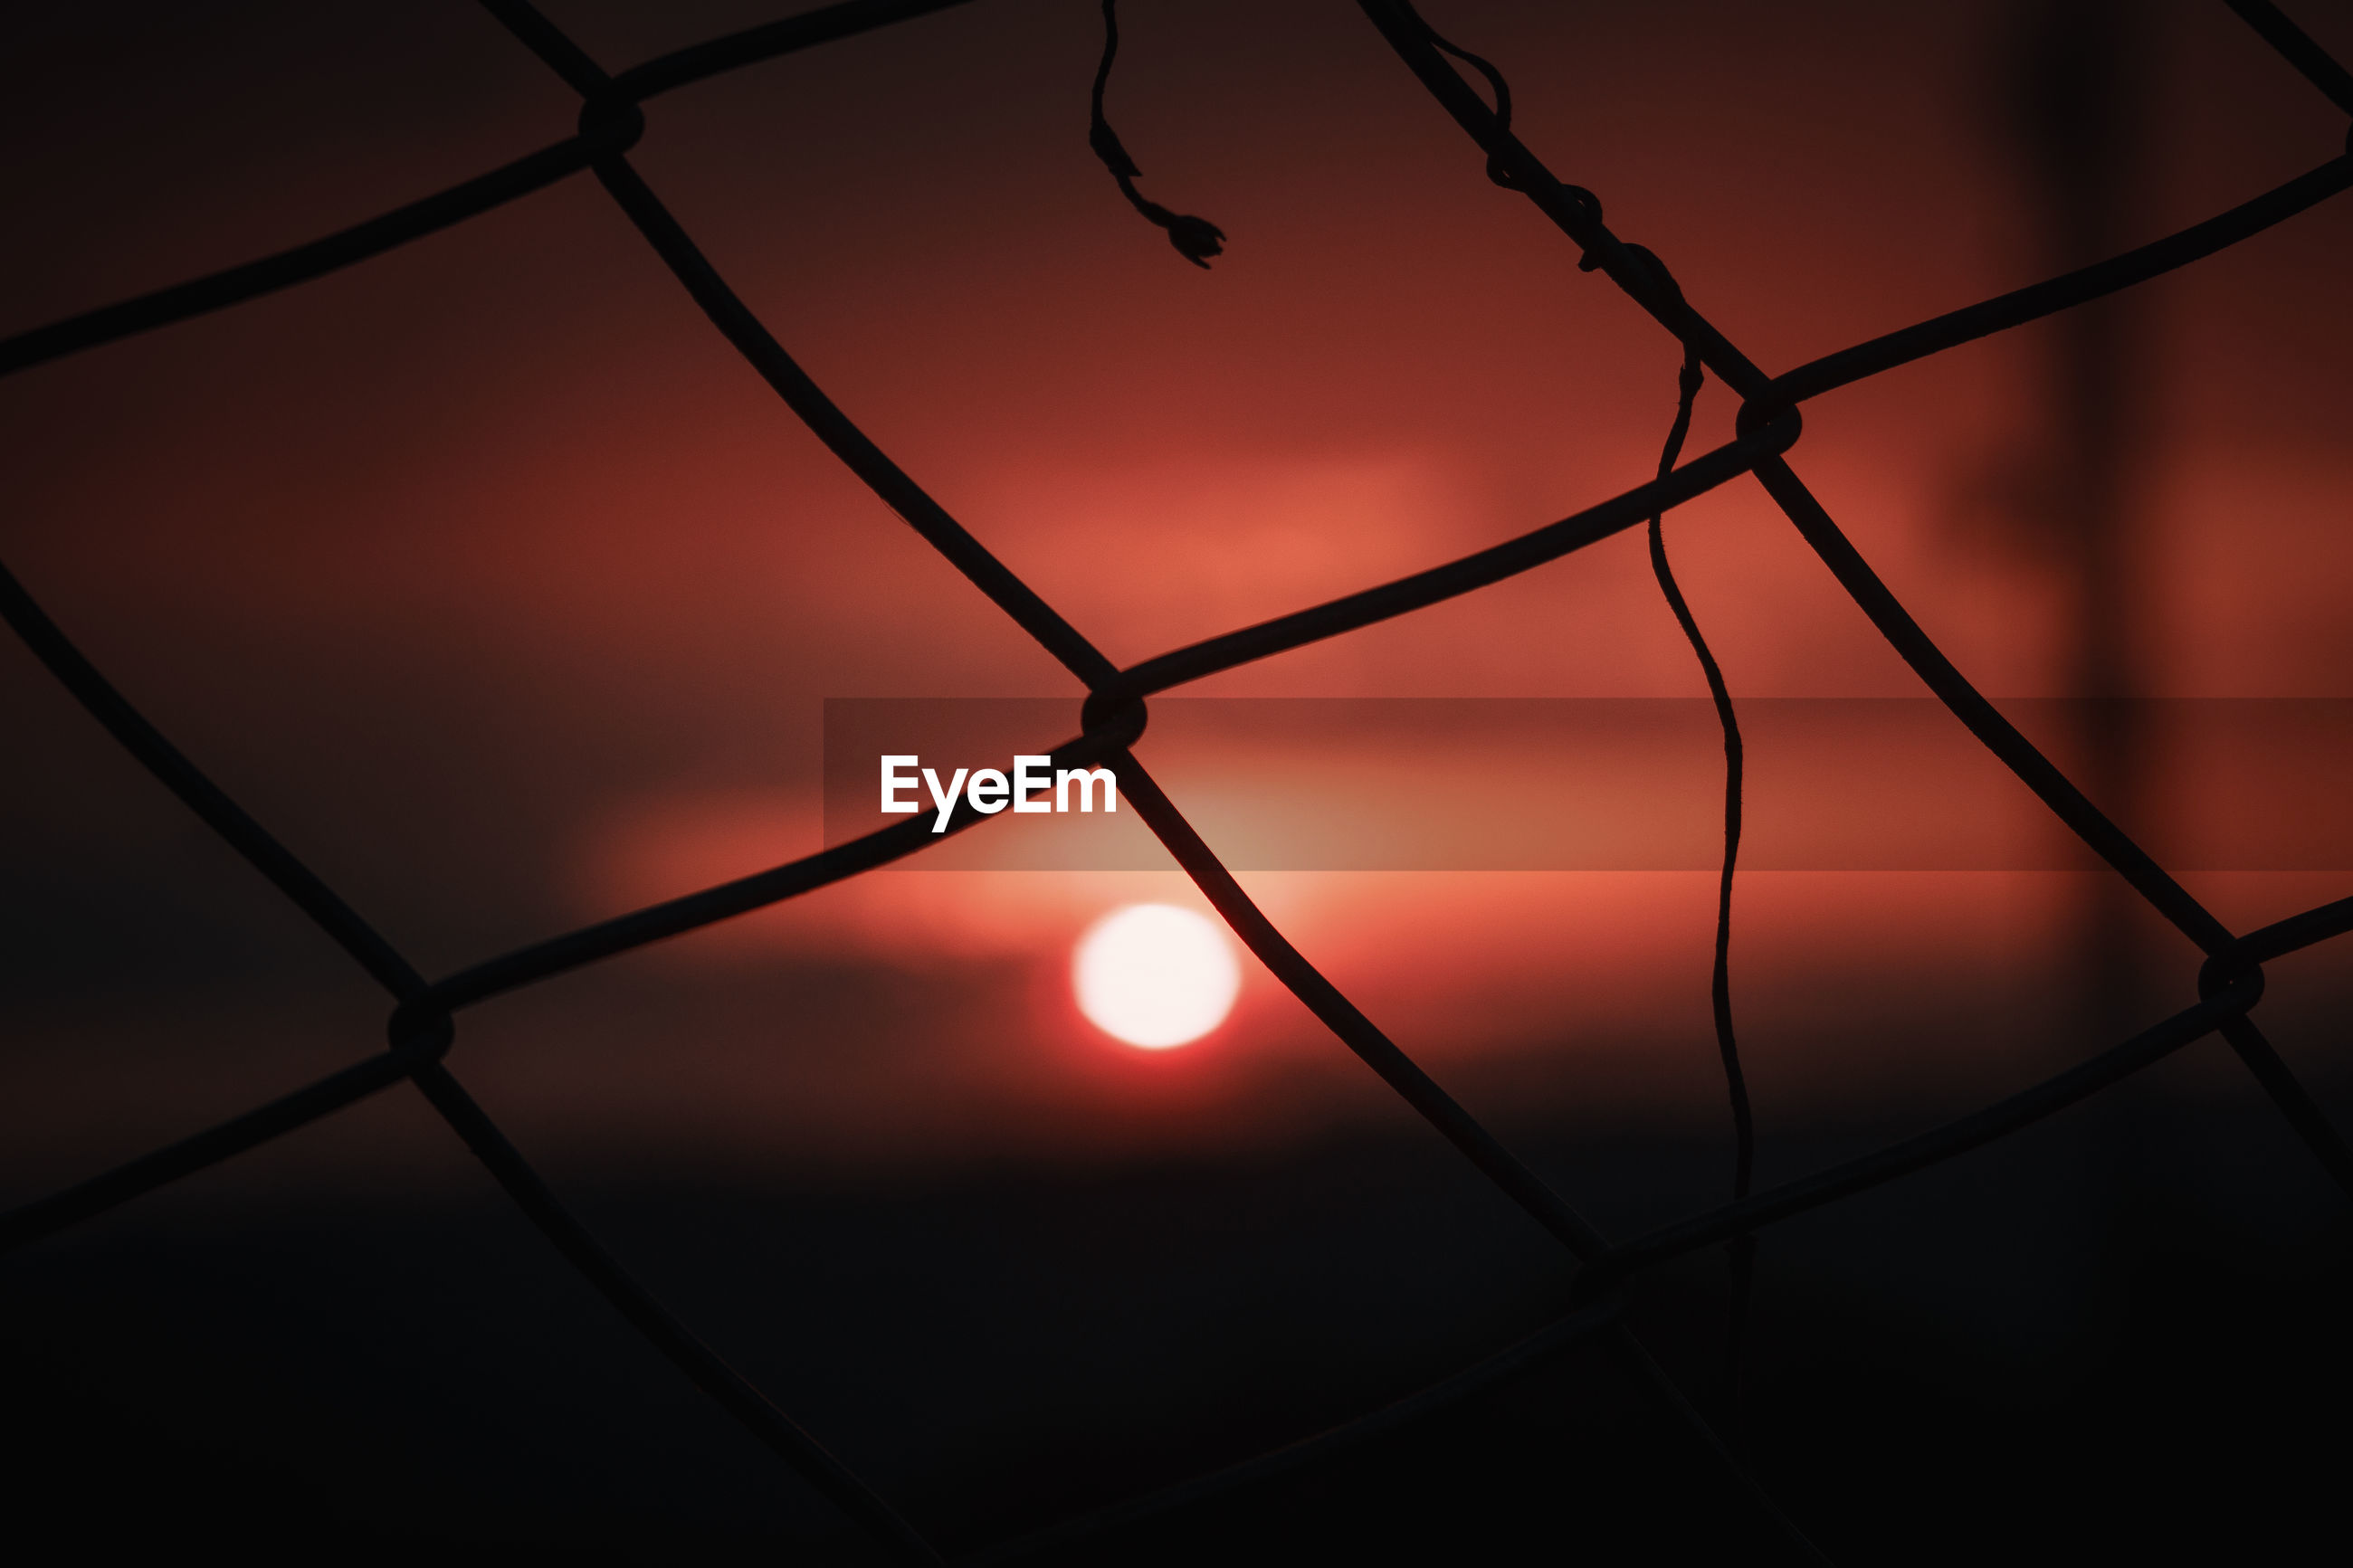 CLOSE-UP OF SILHOUETTE FENCE AGAINST ORANGE SKY